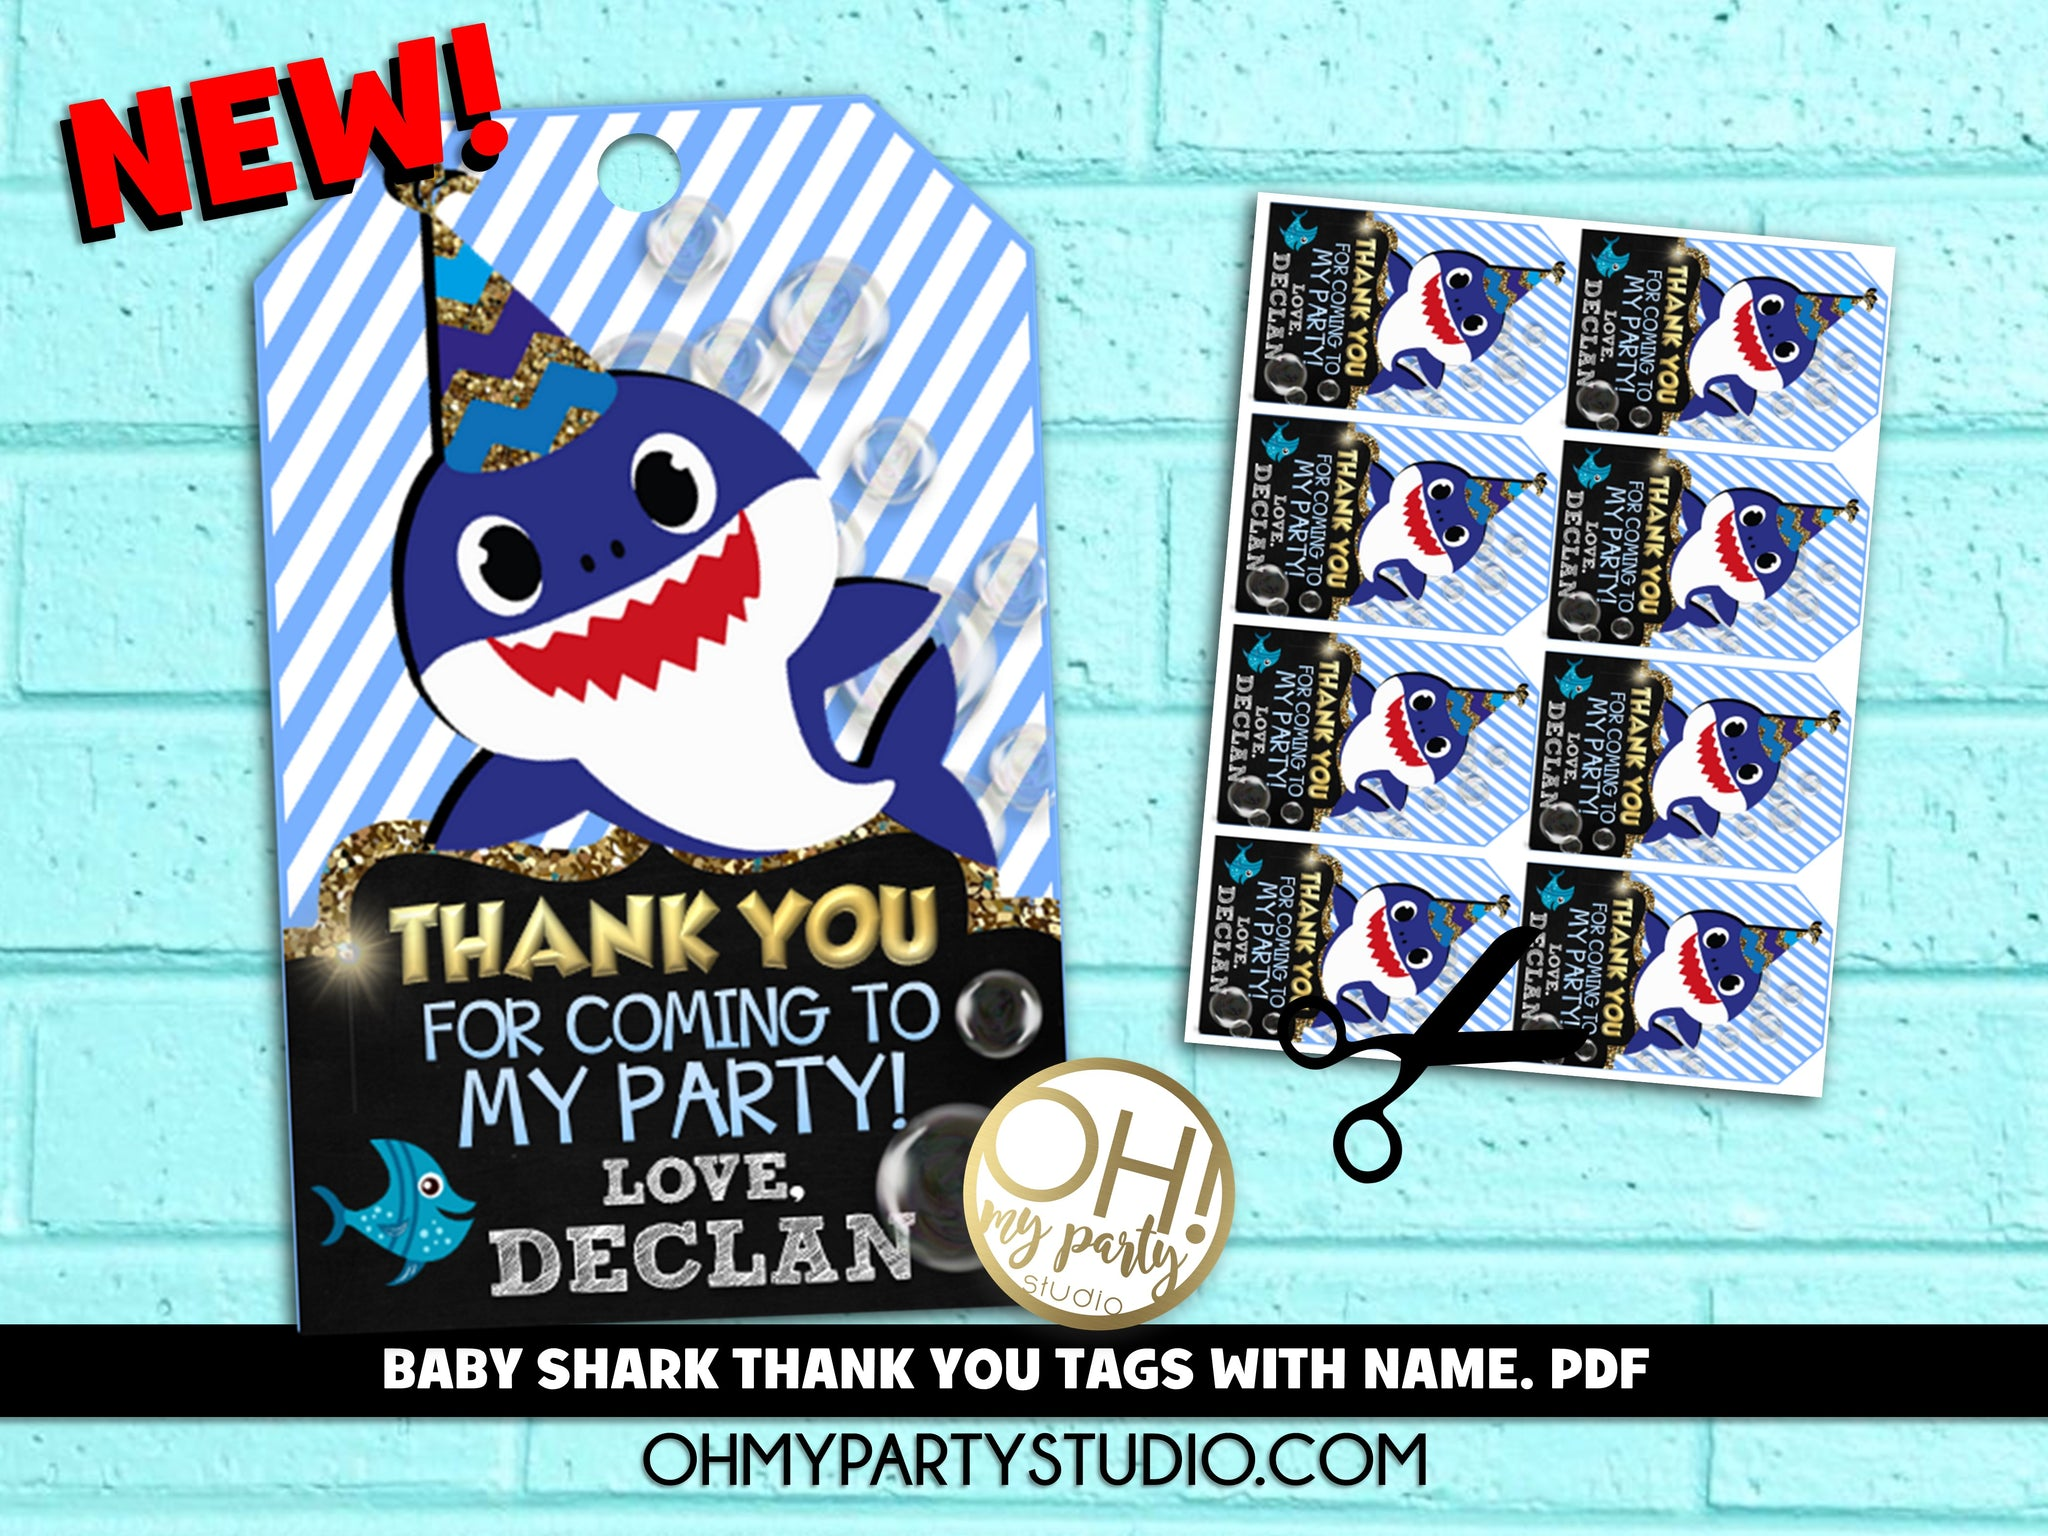 BABY SHARK THANK YOU TAGS PERSONALIZED, BABY SHARK THANK YOU TAGS WITH NAME, THANK YOU TAGS BABY SHARK, BABY SHARK BIRTHDAY BOY, BABY SHARK FAVORS, BABY SHARK PARTY IDEAS, BABY SHARK PARTY THEME, BABY SHARK PARTY DECORATIONS, BABY SHARK THANK YOU TAGS, BABY SHARK BIRTHDAY BOY